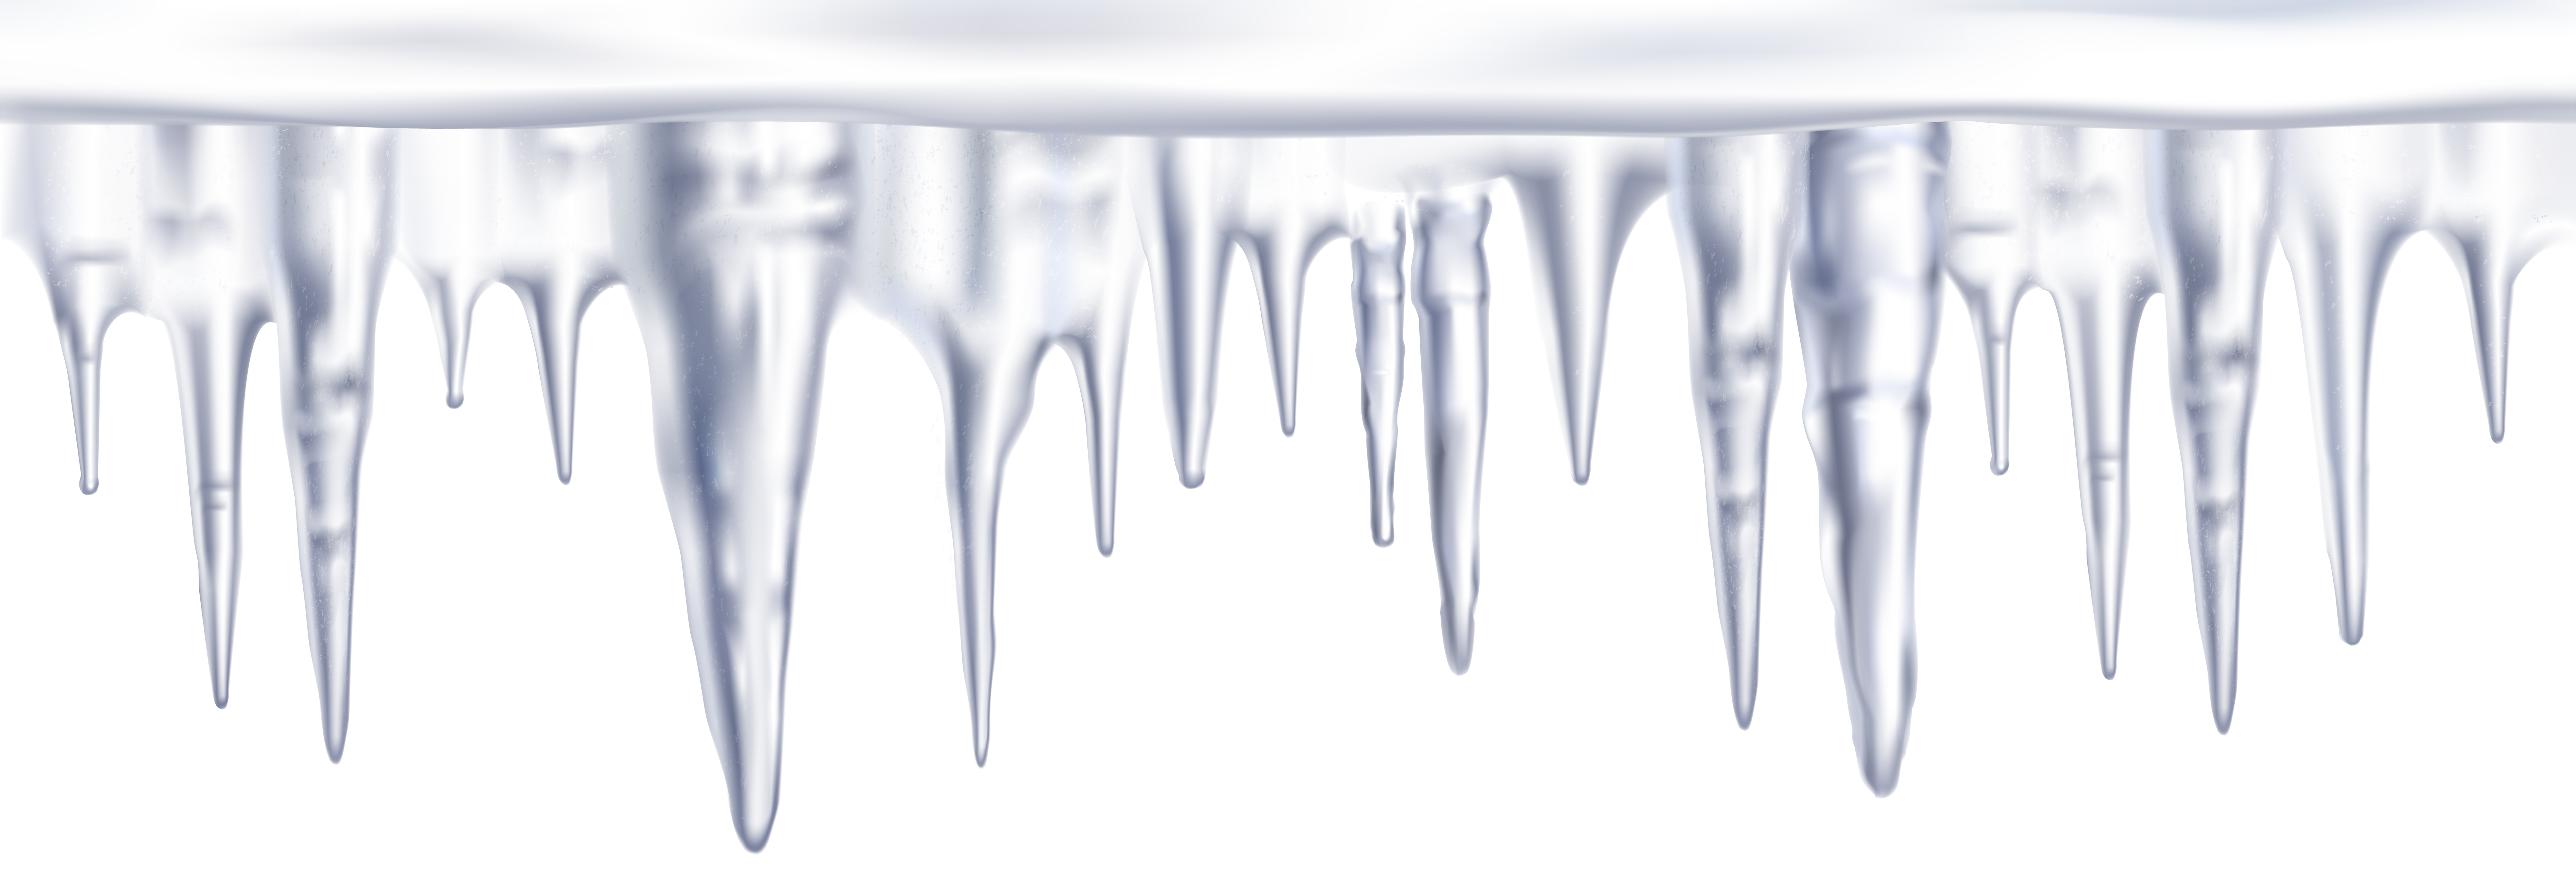 Icicles transparent clipart. Icicle clip art image